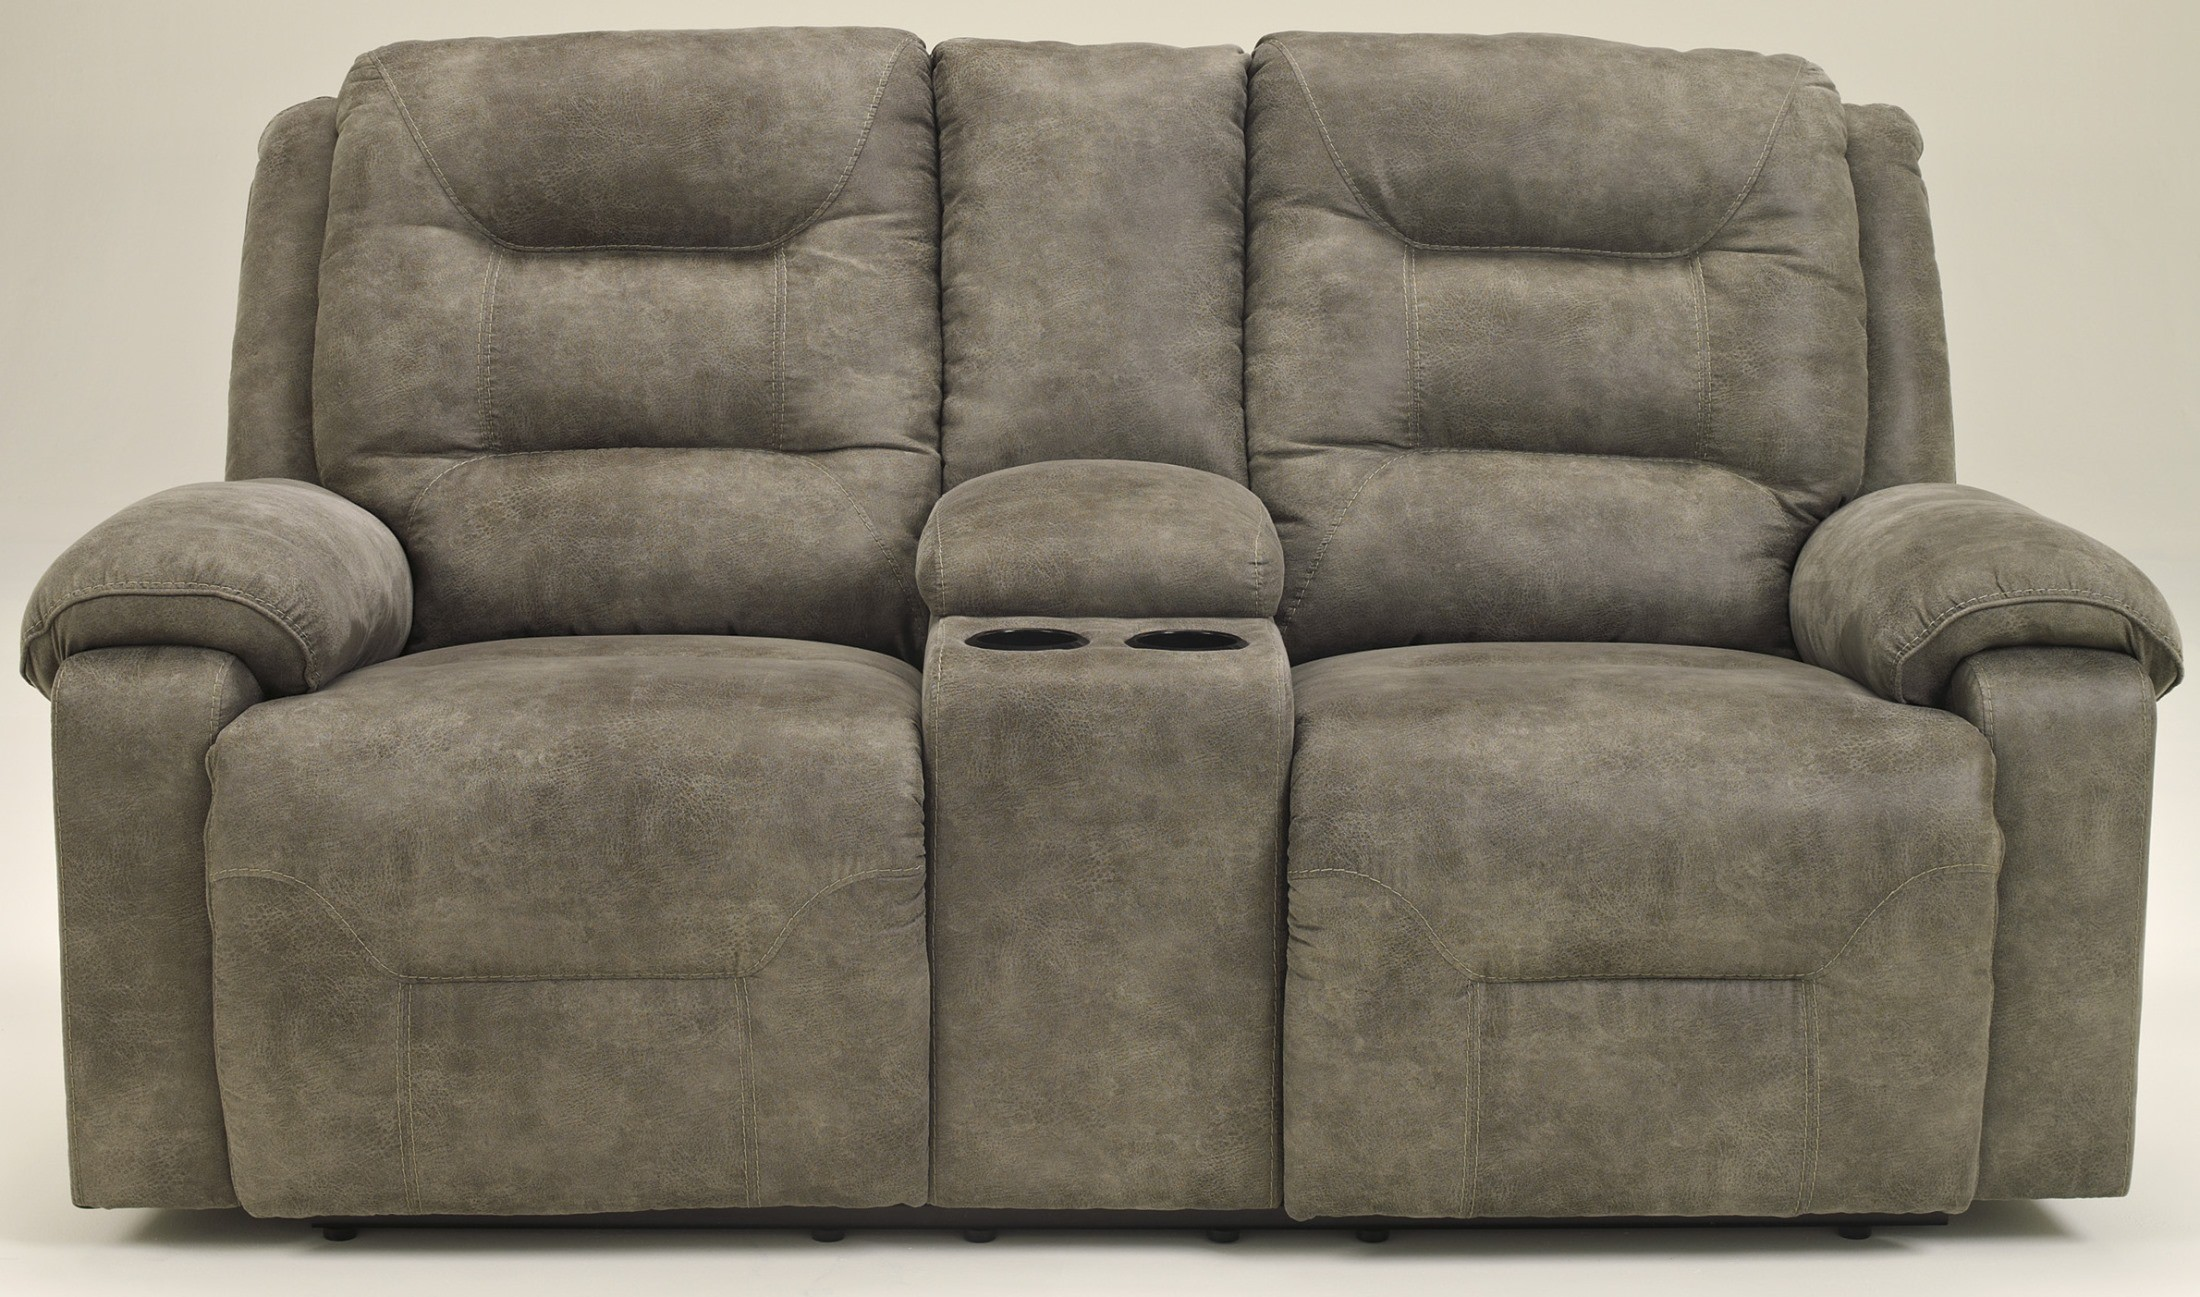 Rotation Smoke Double Reclining Loveseat With Console From